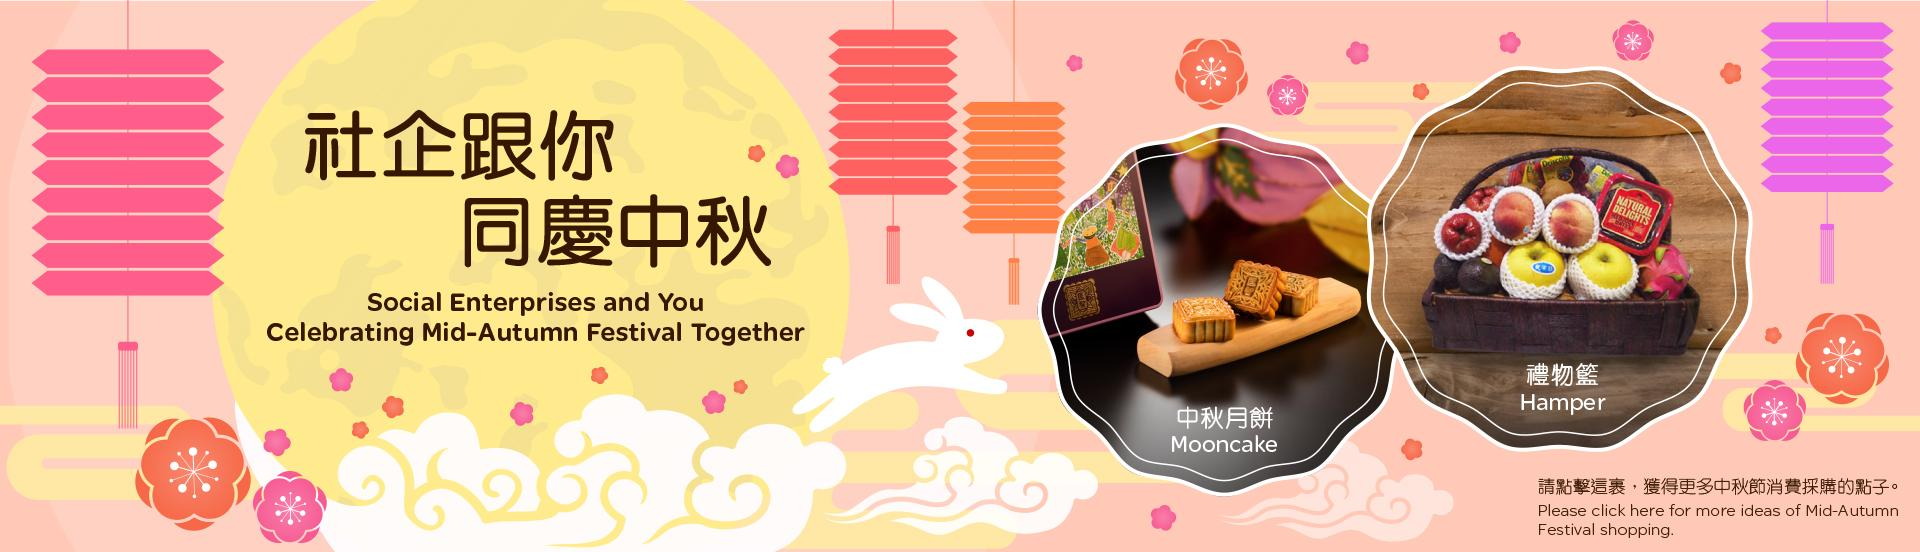 Social Enterprise and You Celebrating Mid-Autumn Festival Together